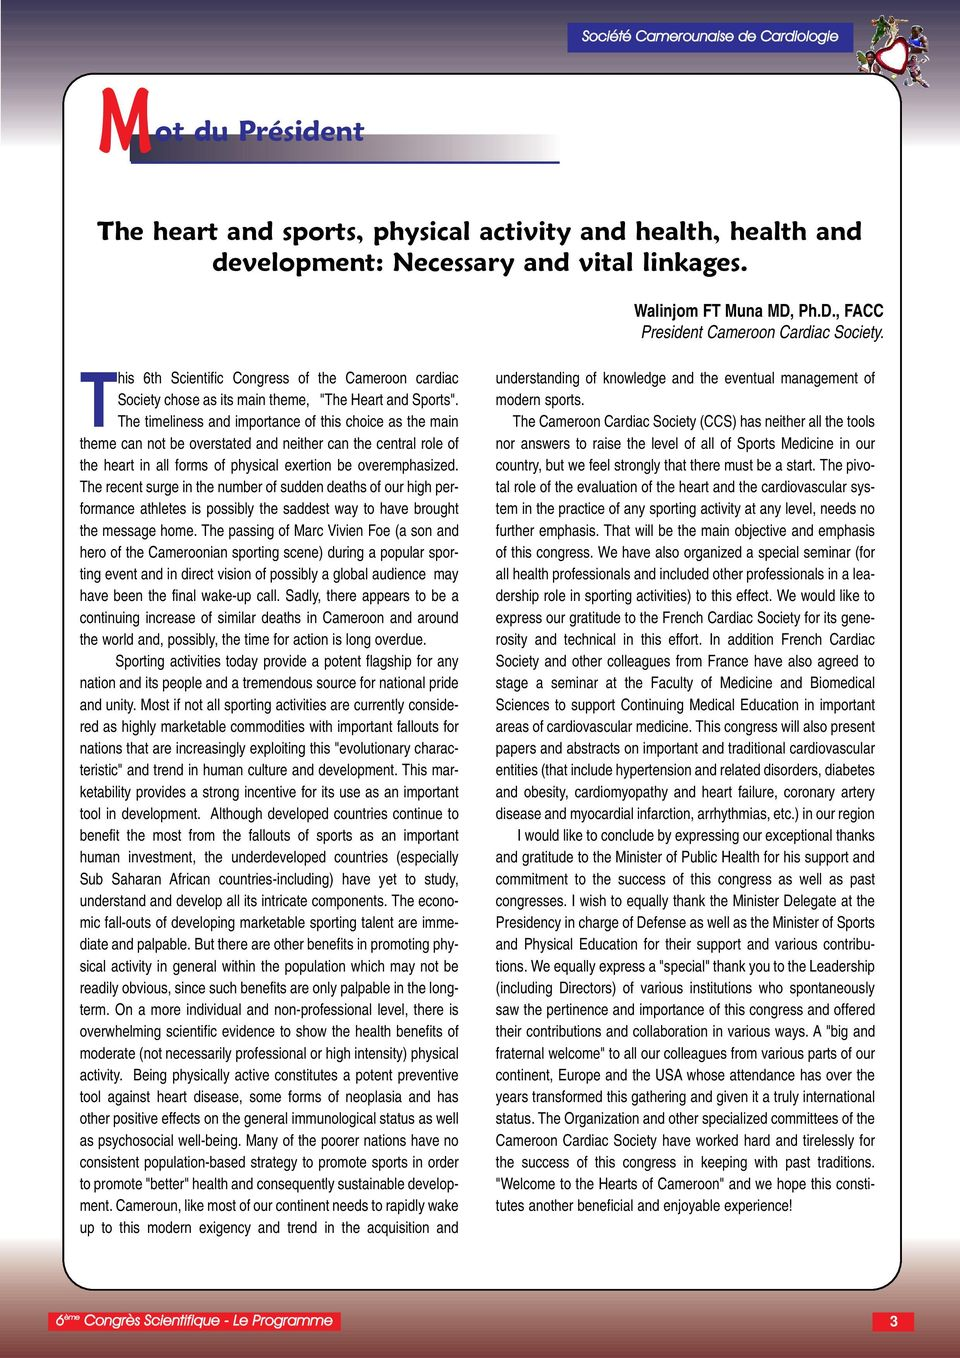 The timeliness and importance of this choice as the main theme can not be overstated and neither can the central role of the heart in all forms of physical exertion be overemphasized.